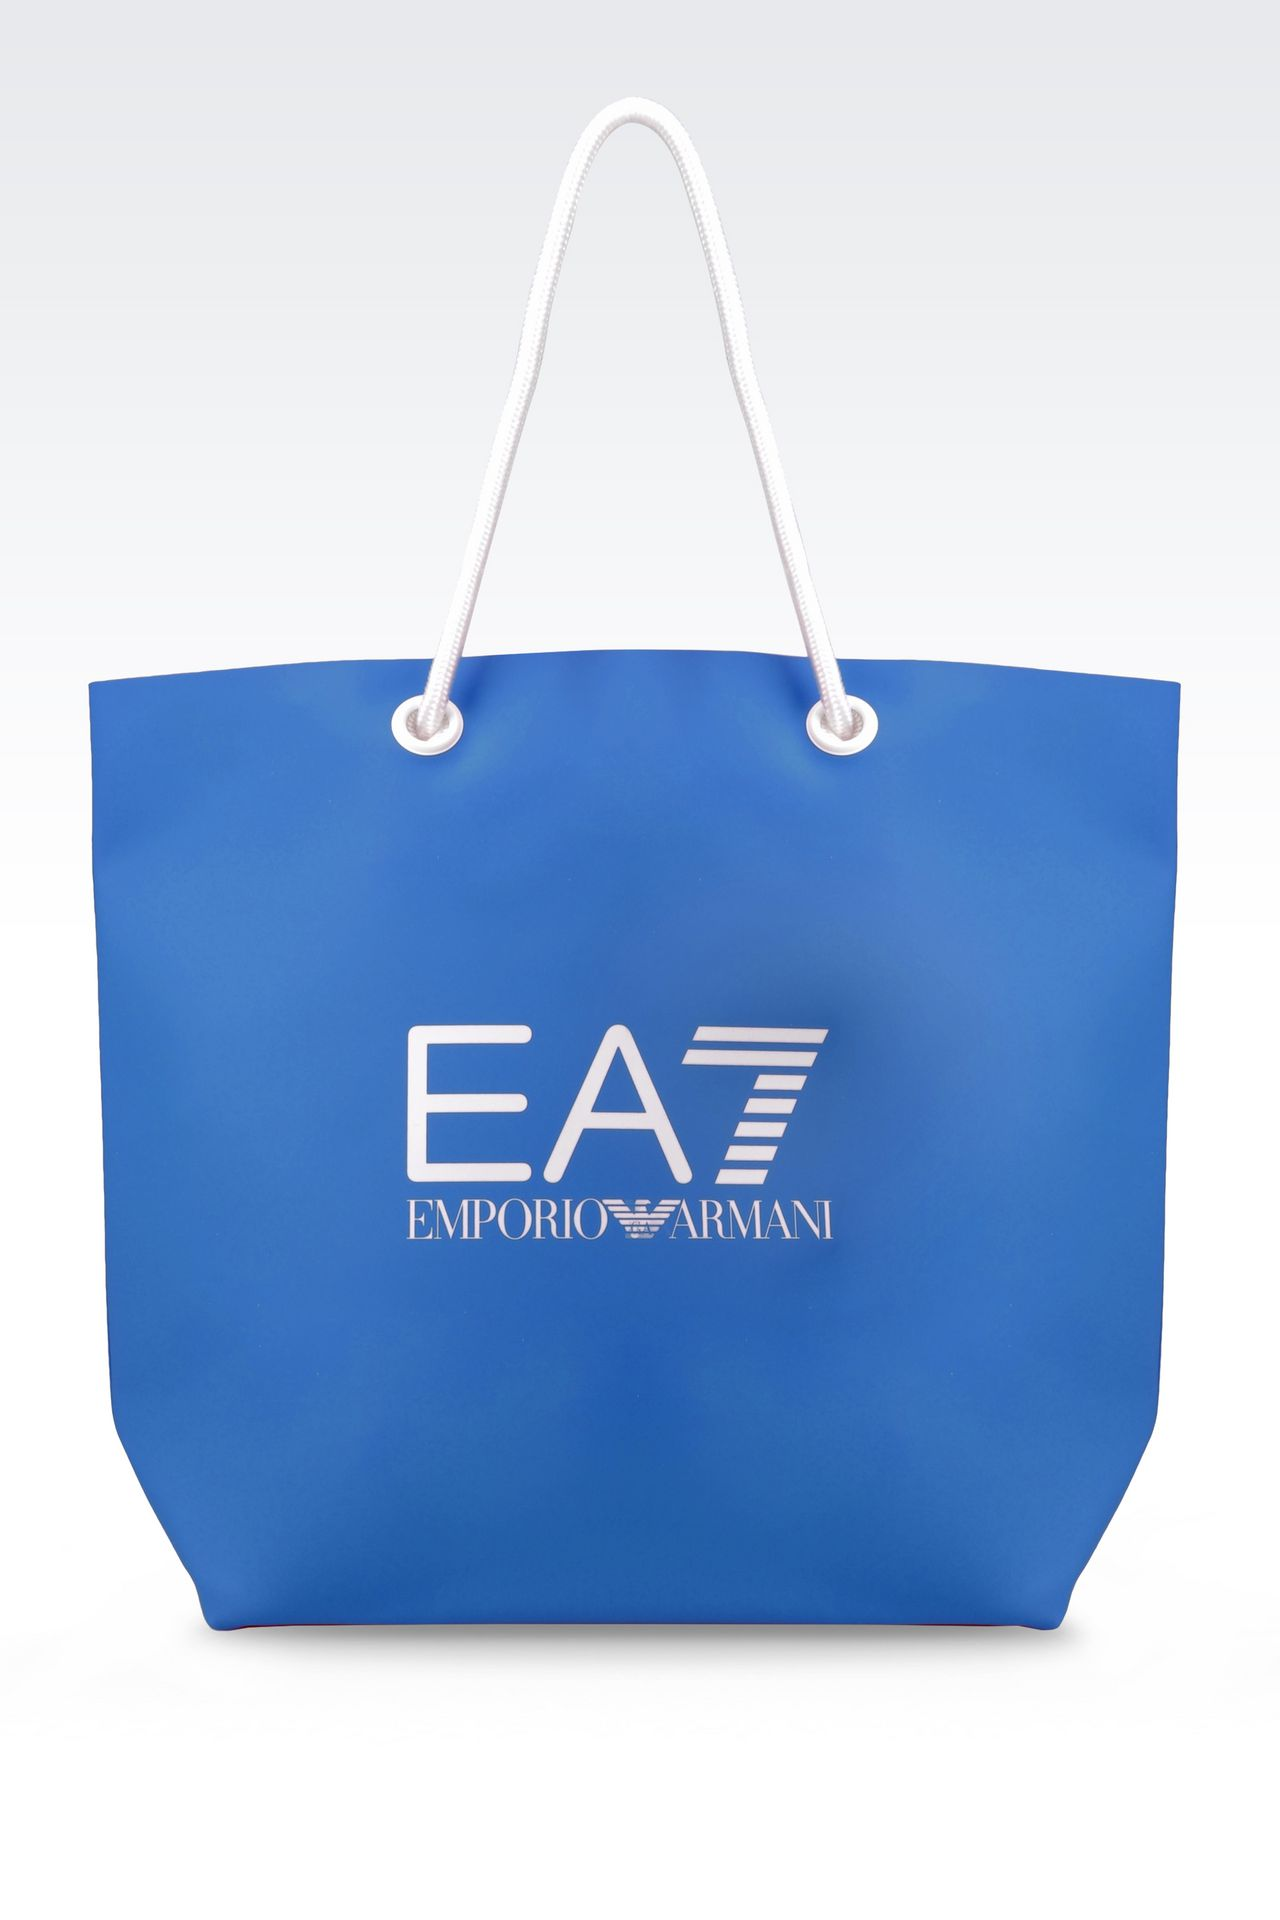 EA7 Women SEA WORLD LINE BEACH BAG , PVC - Armani.com